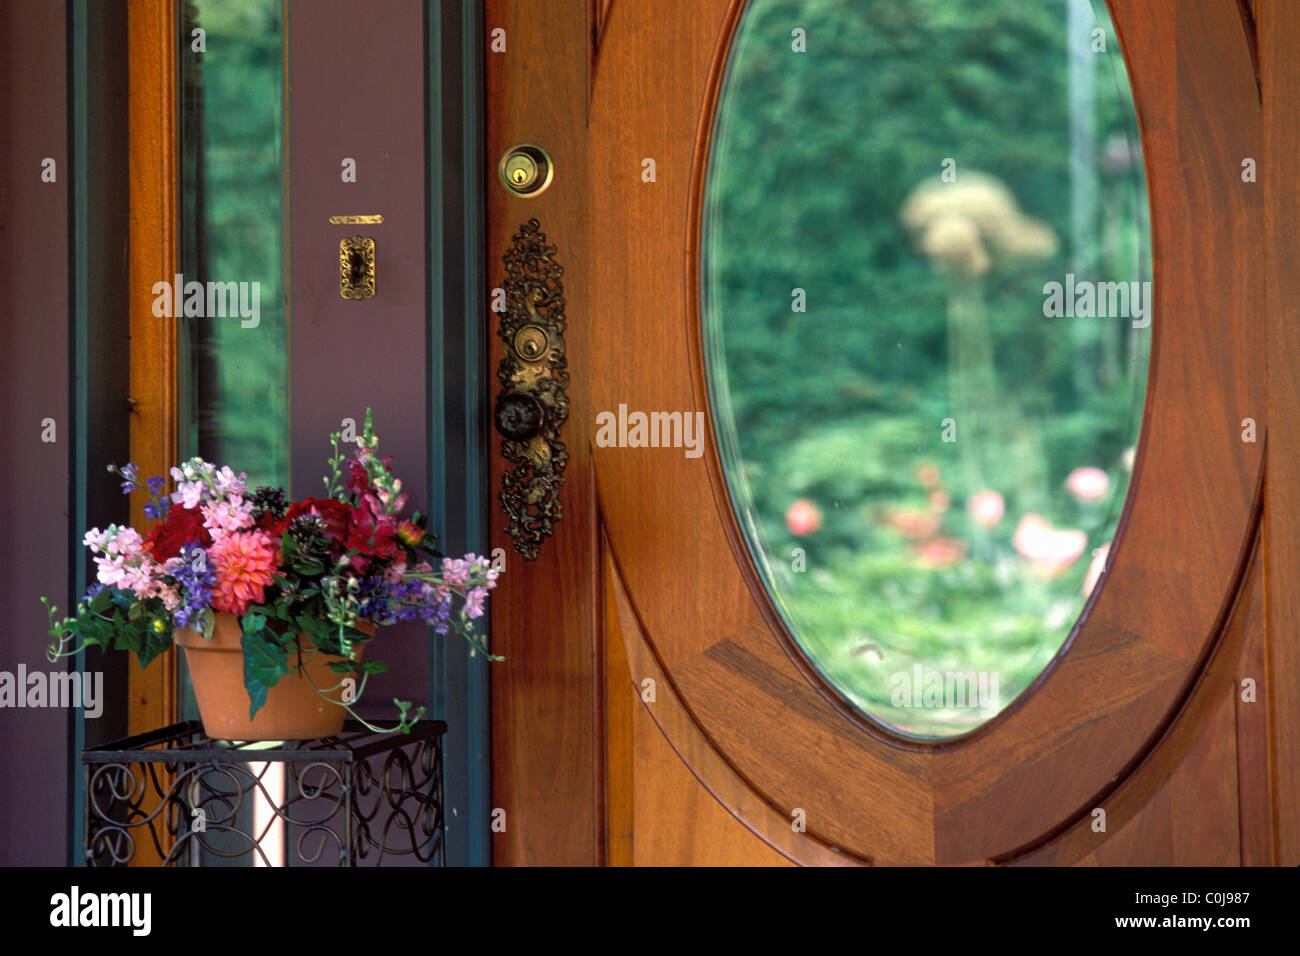 WOOD FRONT ENTRANCE DOOR TO AN AMERICAN HOME WITH OVAL GLASS MIRROR INSET AND POT OF ANNUALS.  U.S.A. - Stock Image